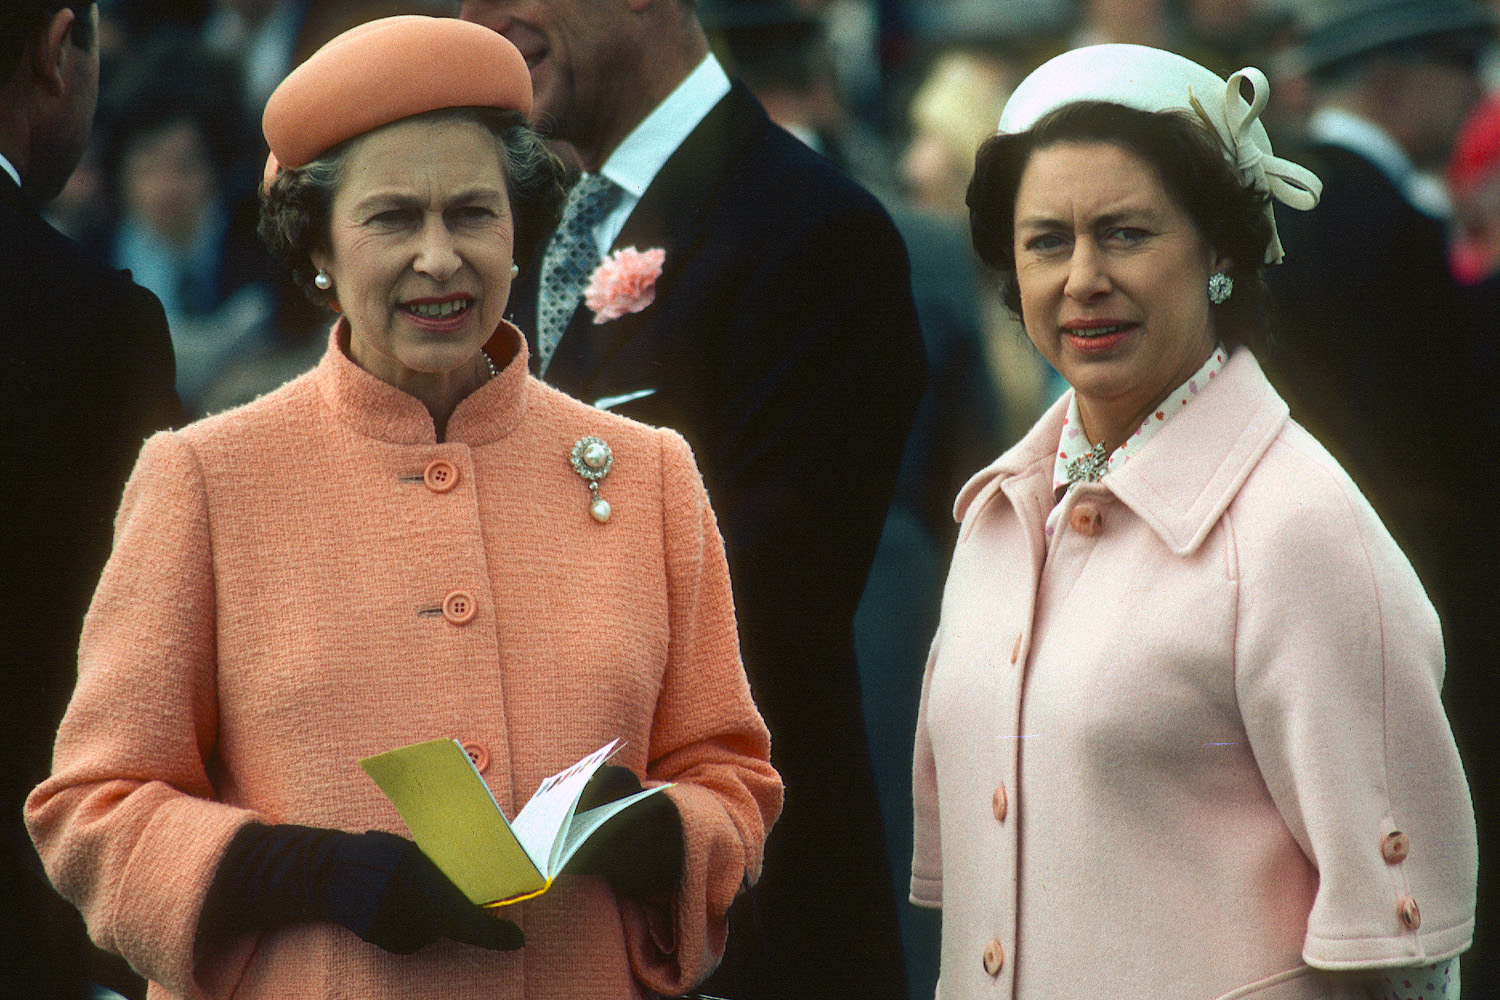 Queen Elizabeth ll and her sister Princess Margaret attend the Epsom Derby